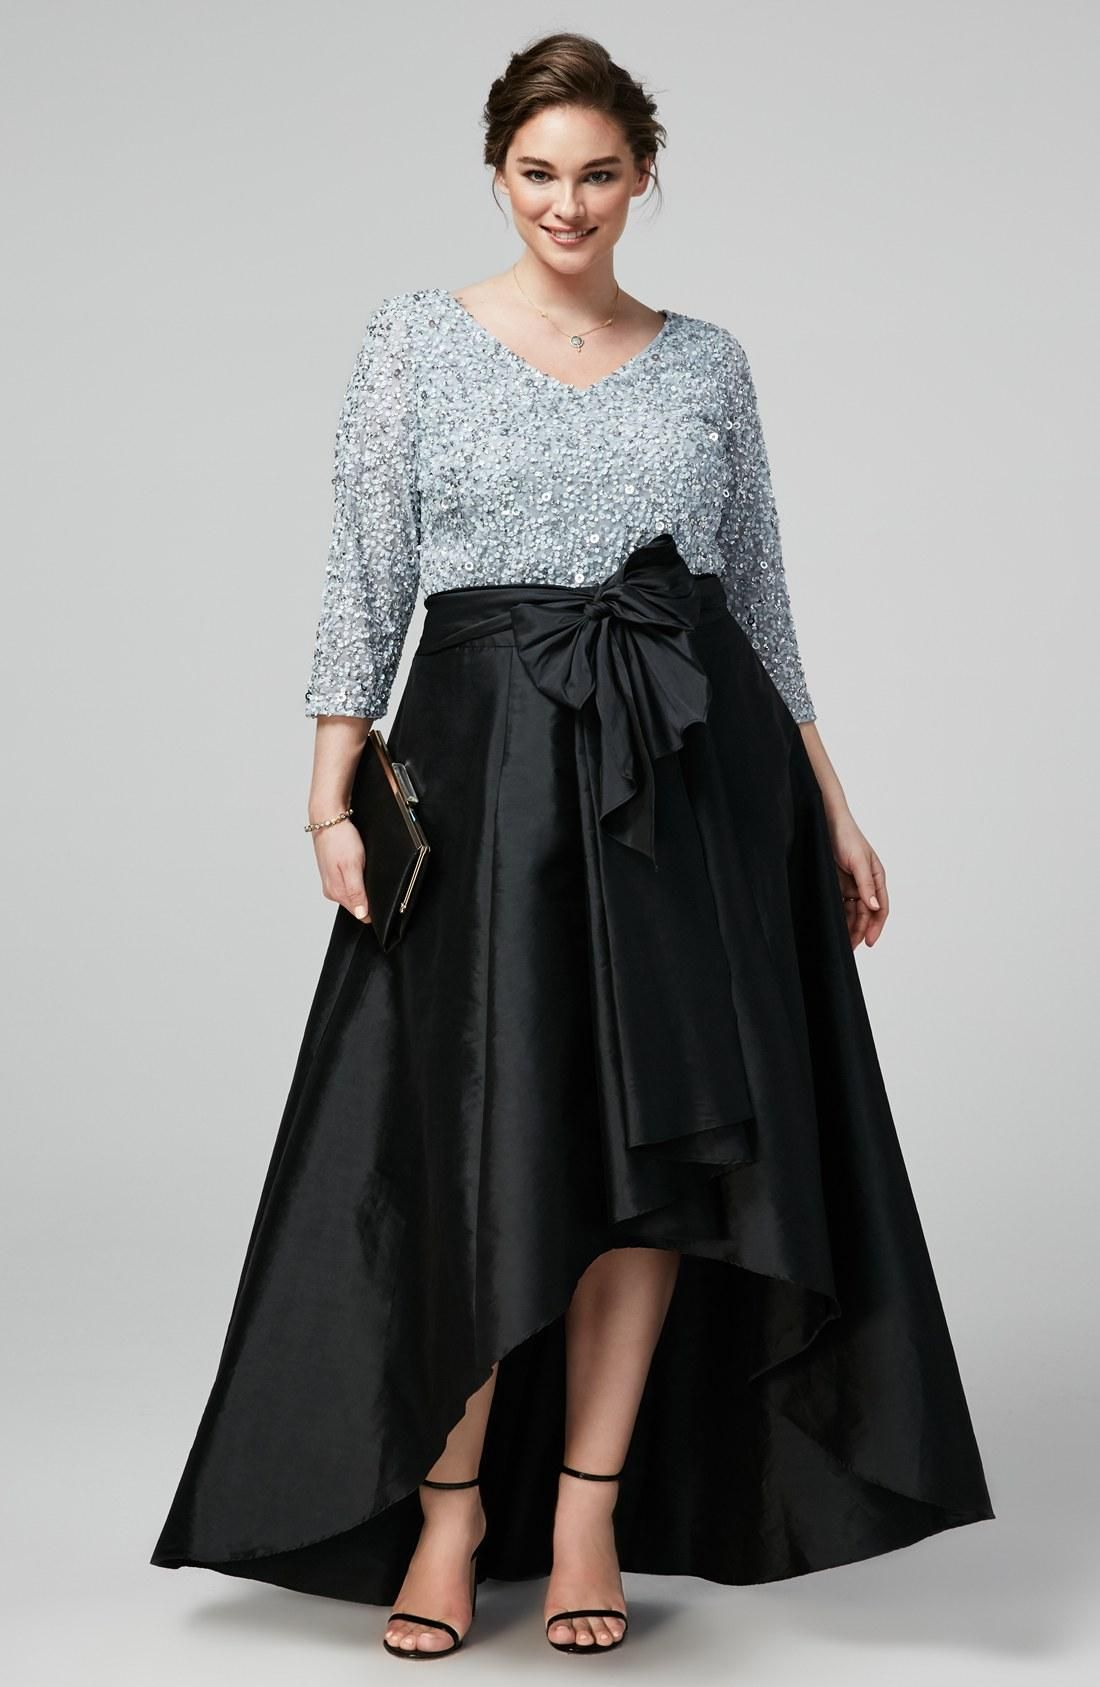 Chic High Low Sequined Plus Size Prom Dresses Sleeves V Neck A-Line Formal  Dress Teffeta Cheap Evening Gowns e307b8c04